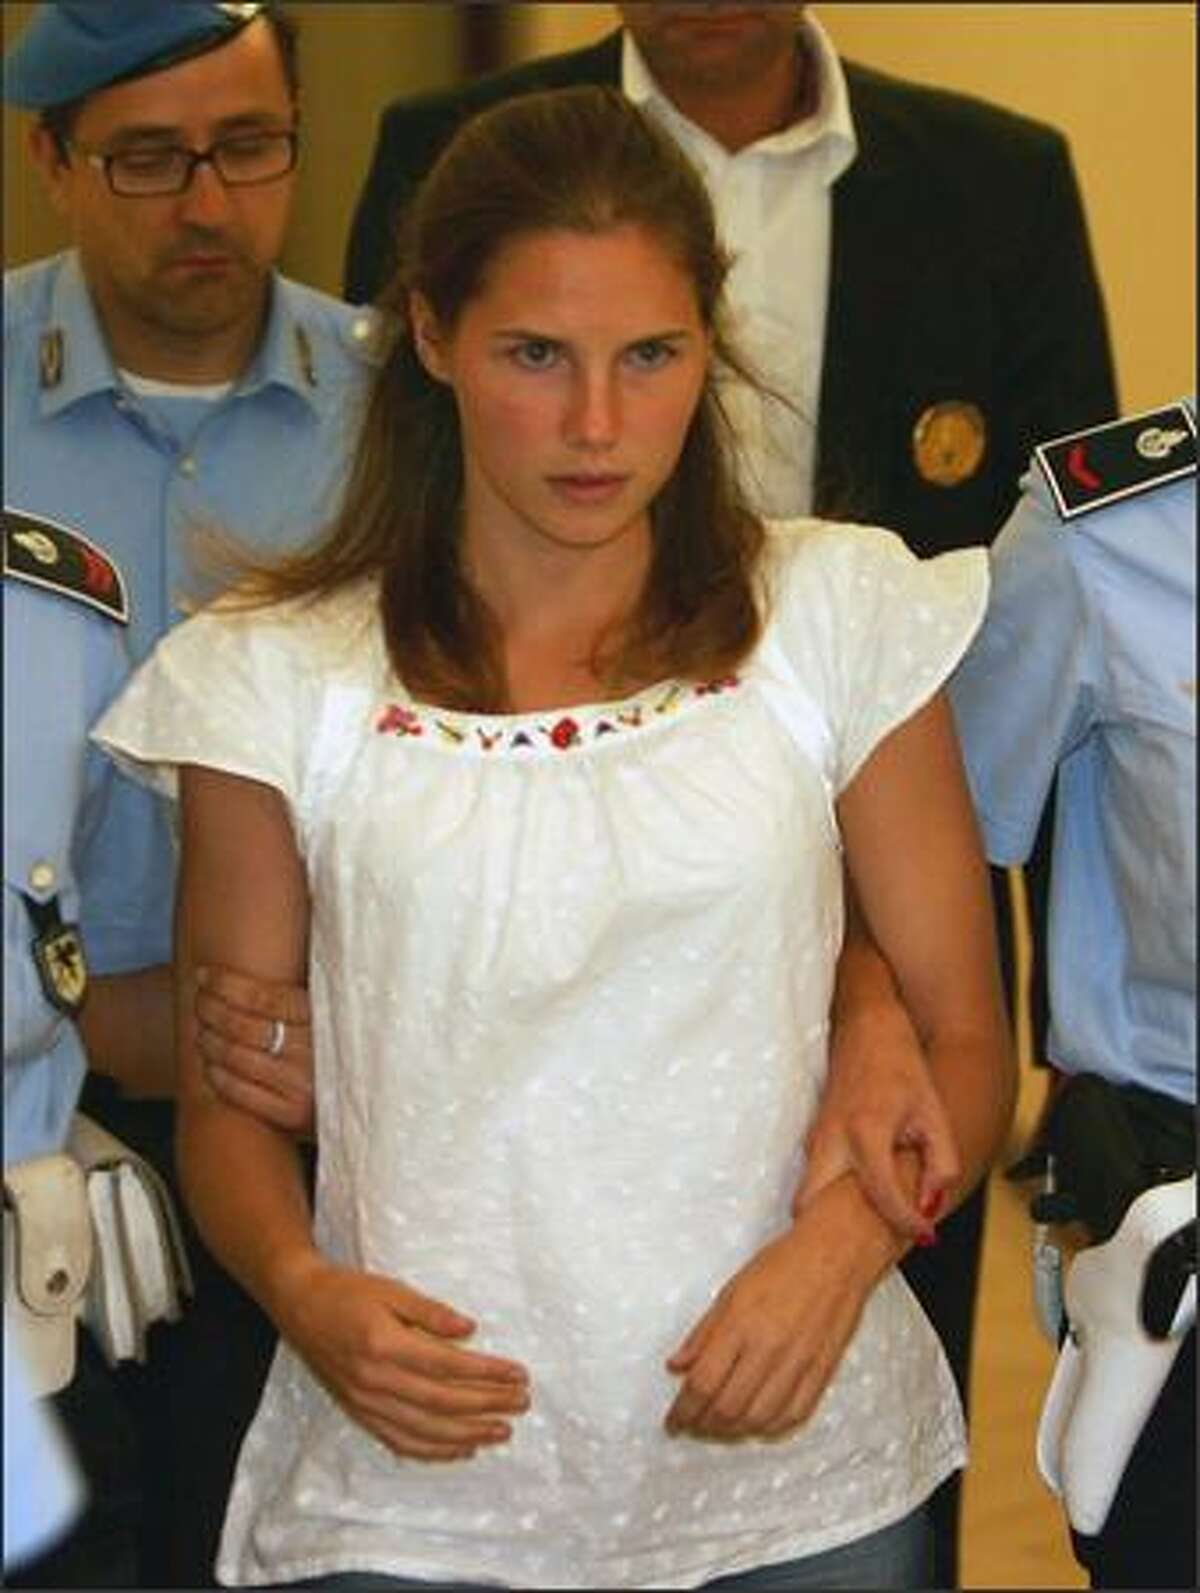 One of the three suspects in the murder of British student Meredith Kercher, Amanda Knox, is escorted by police upon her arrival at a court hearing in Perugia on Sept. 16.